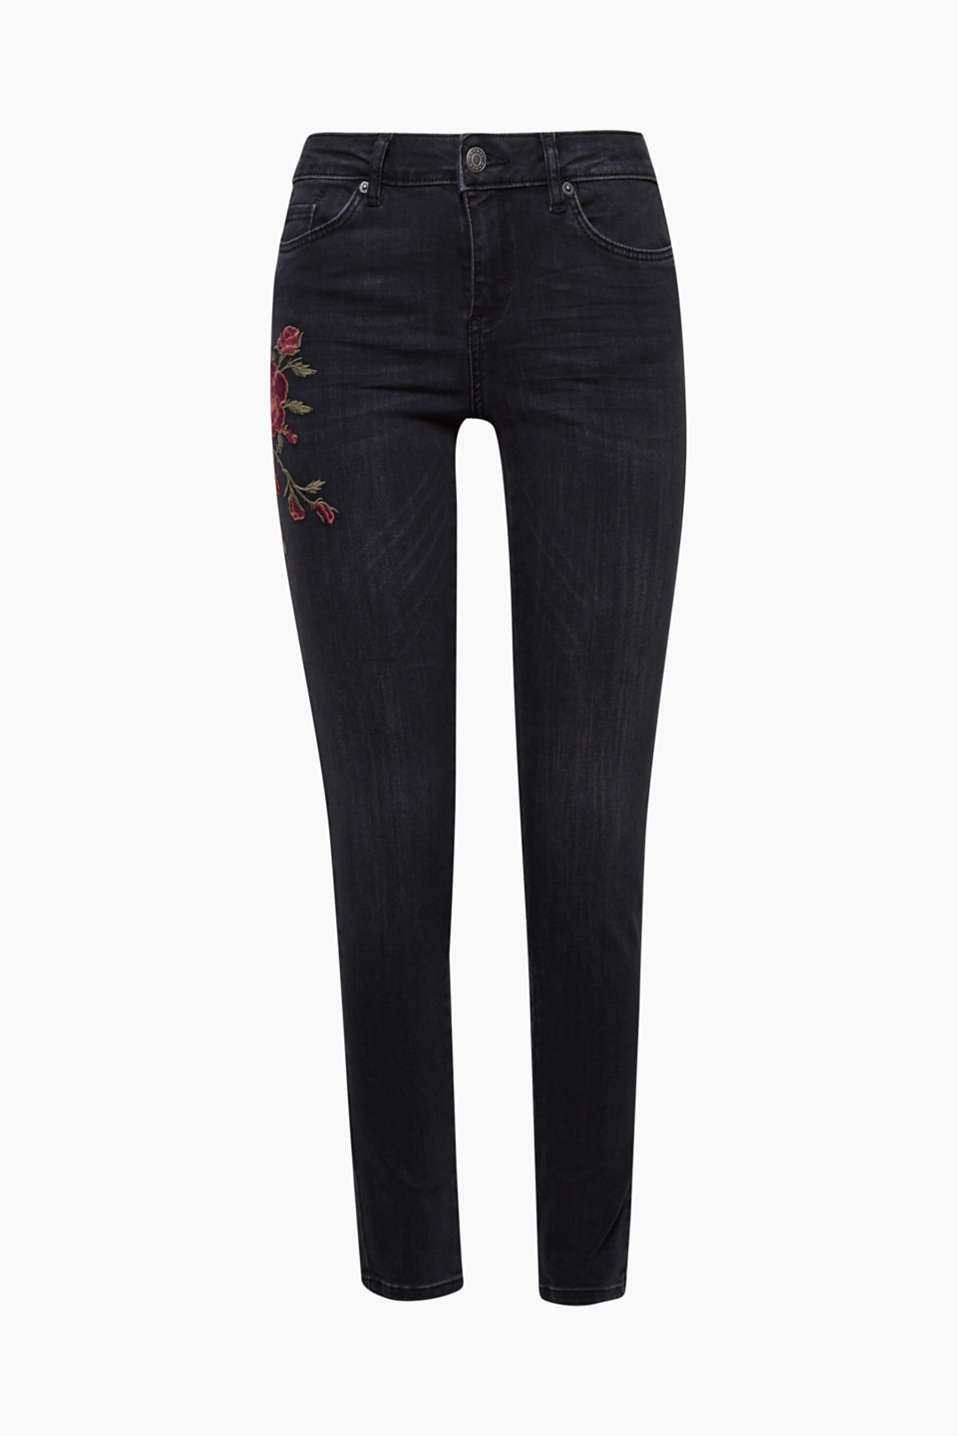 An enchanting eye-catcher: the rose embroidery on the right hip is the particular highlight of these stretch jeans!